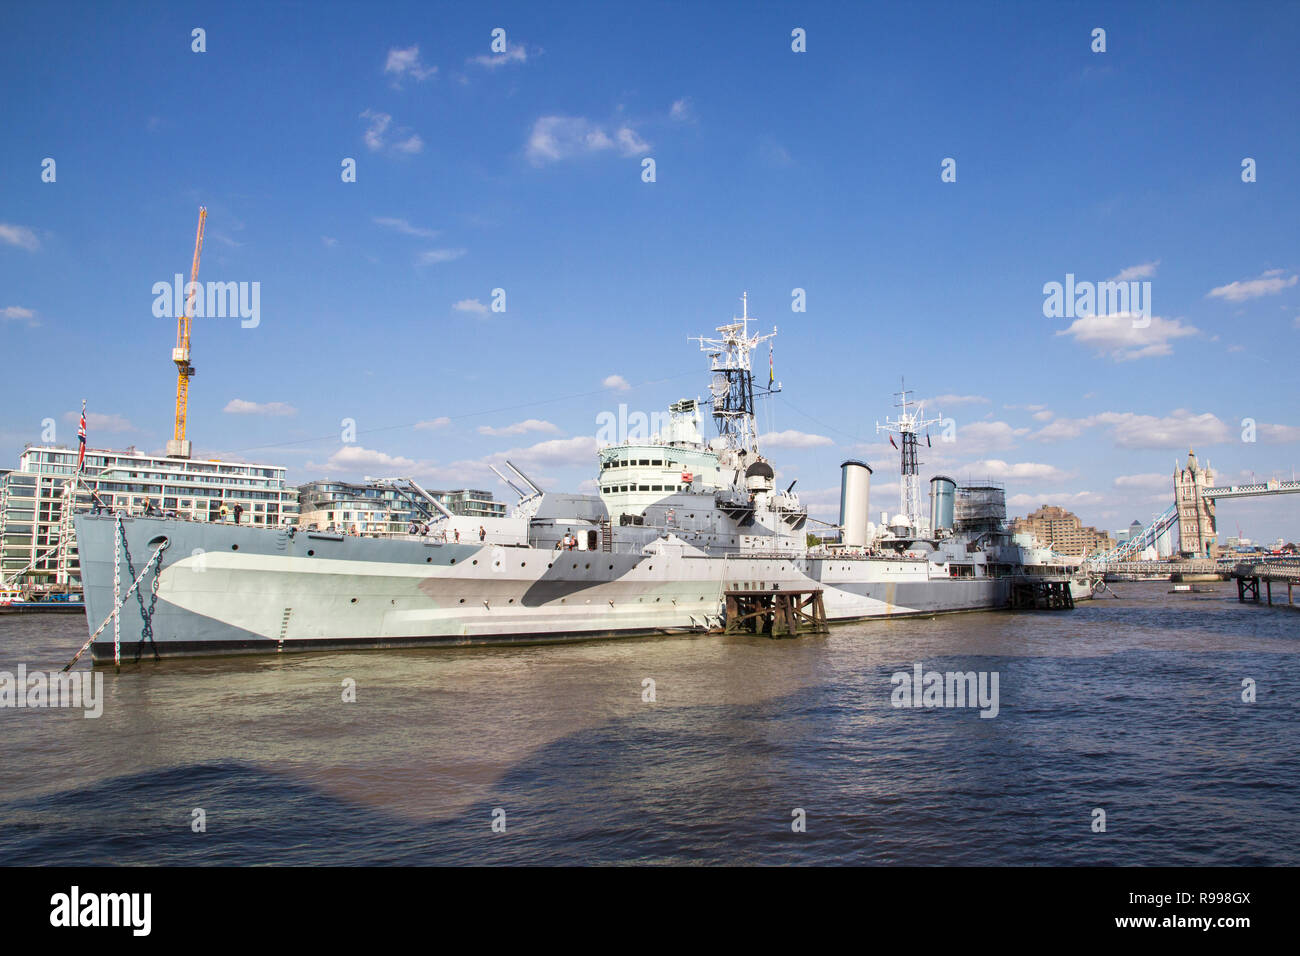 LONDON, UK - SEPTEMBER 1, 2018. London cityscape across the River Thames with a view of HMS Belfast Warship Museum and Tower of London. London, Englan - Stock Image